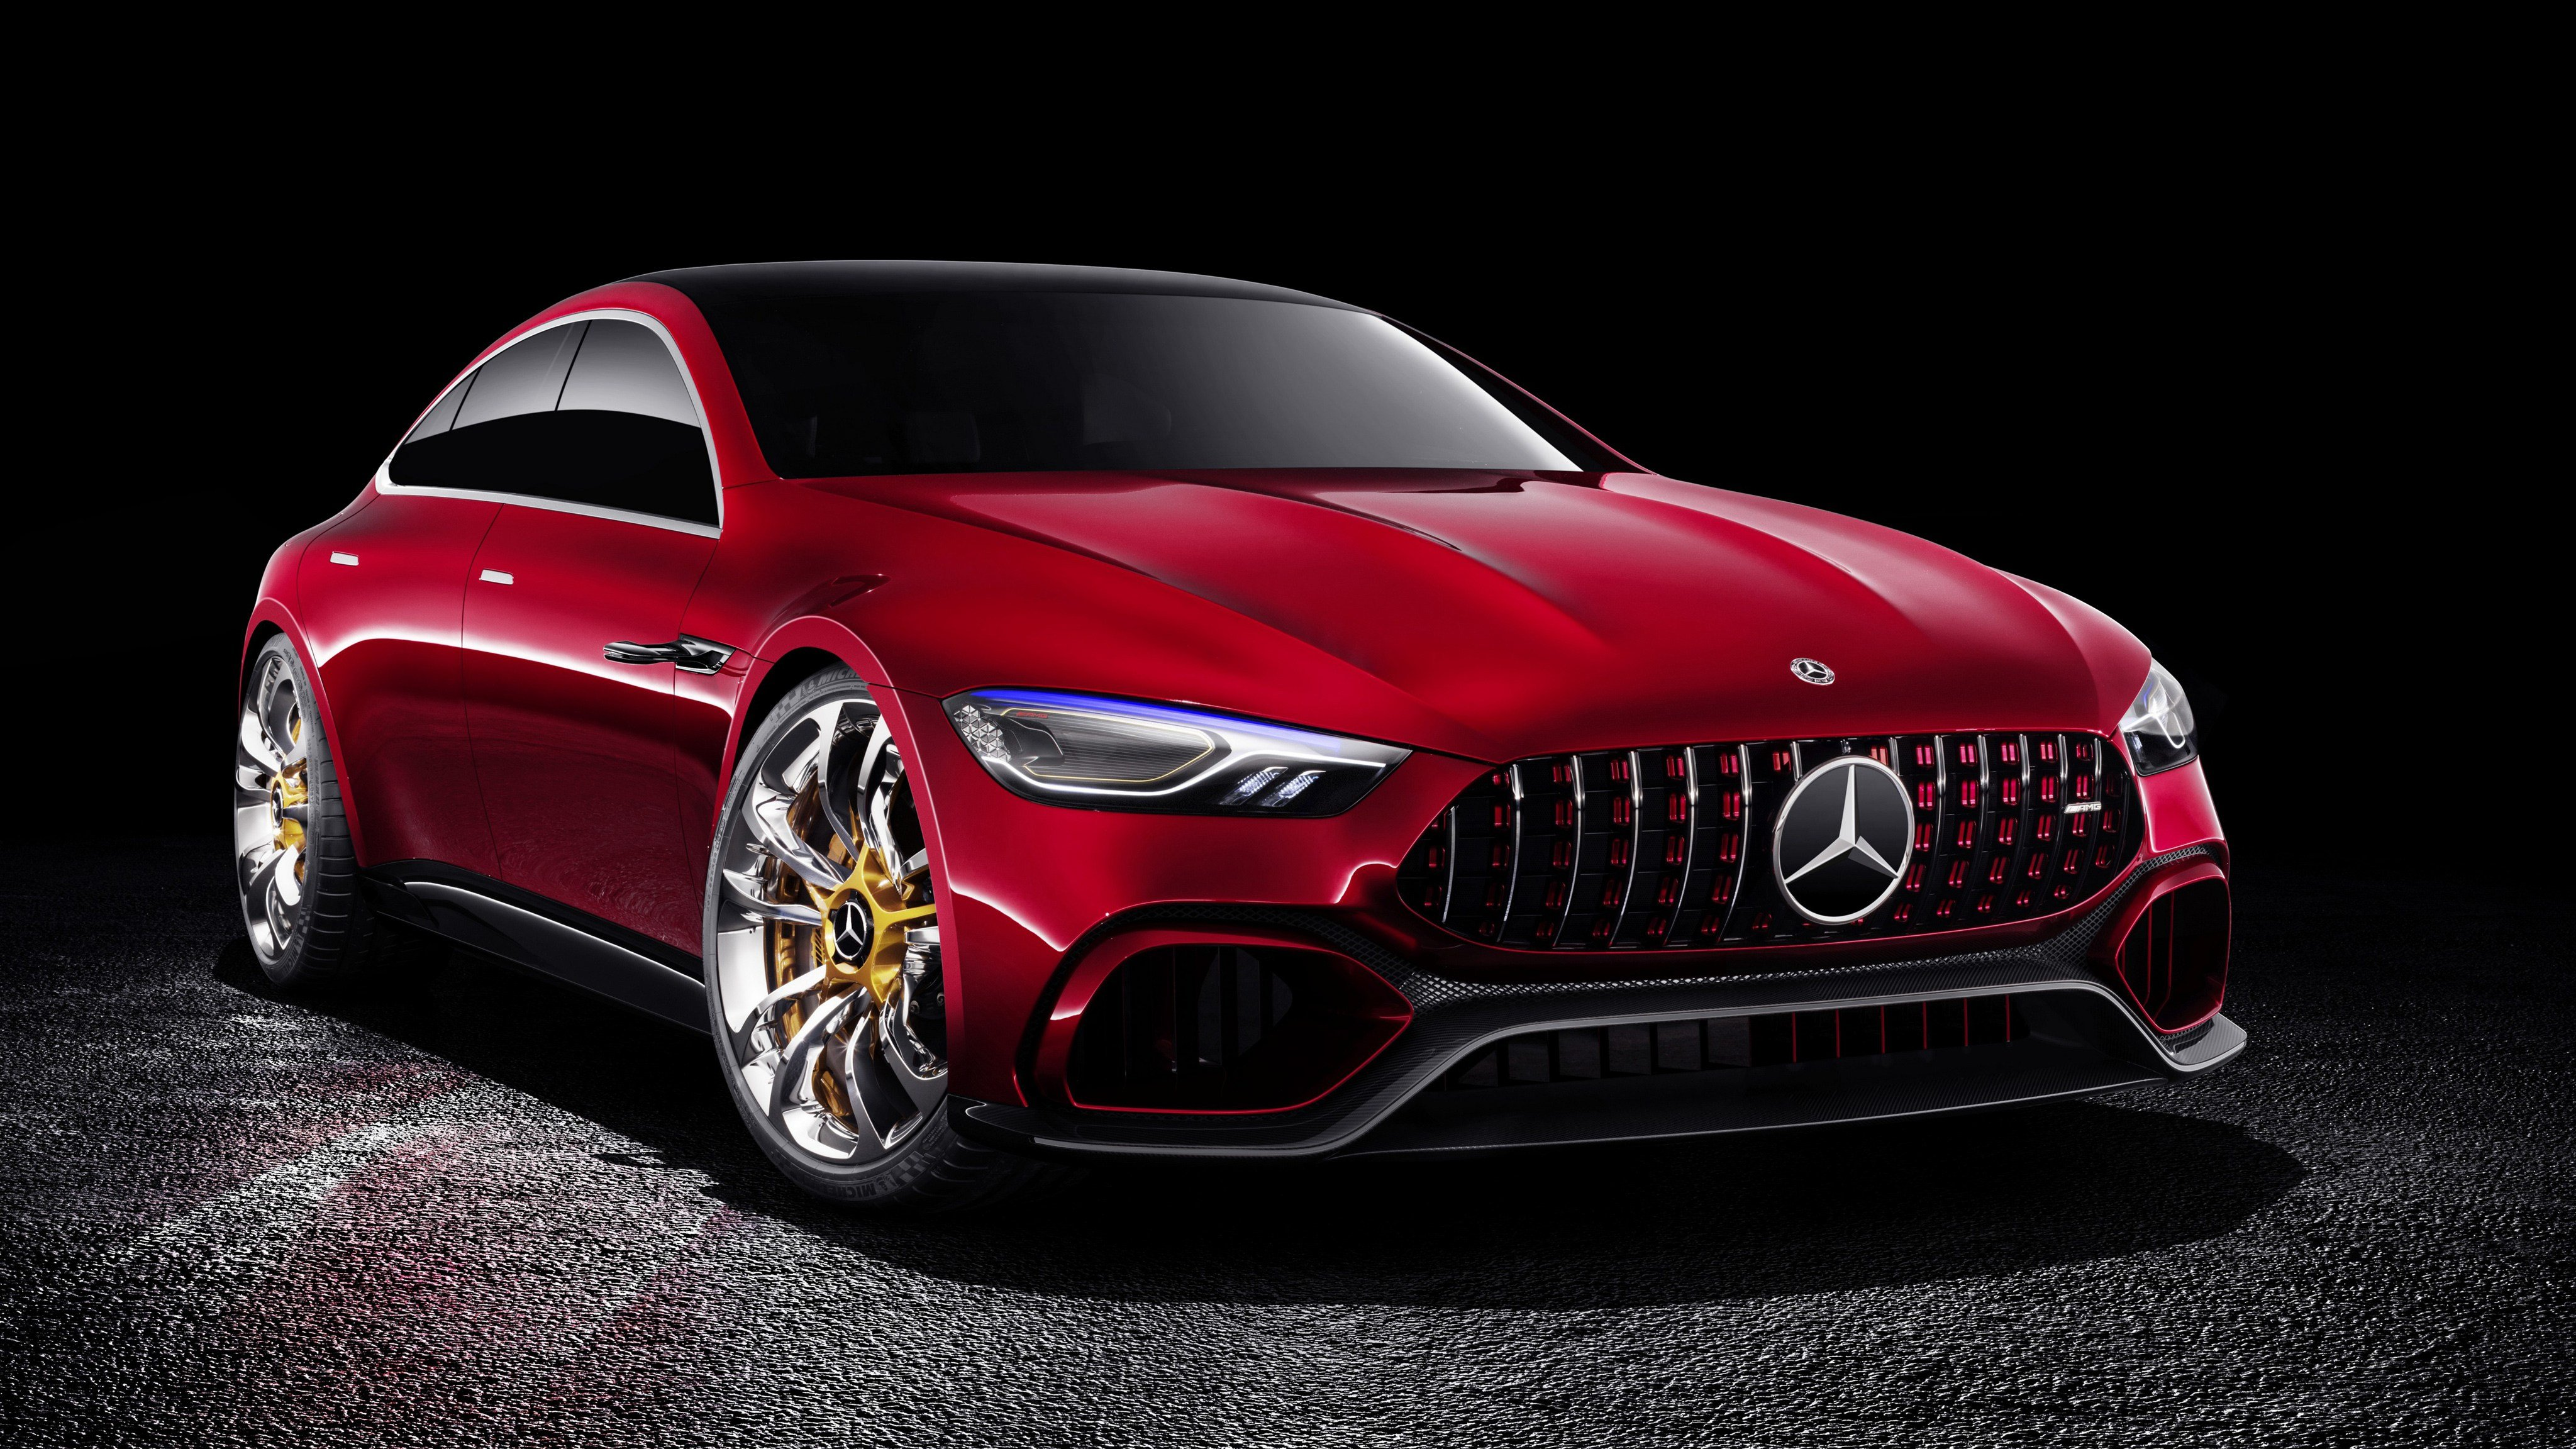 Latest 2017 Mercedes Amg Gt Concept Wallpaper Hd Car Wallpapers Free Download